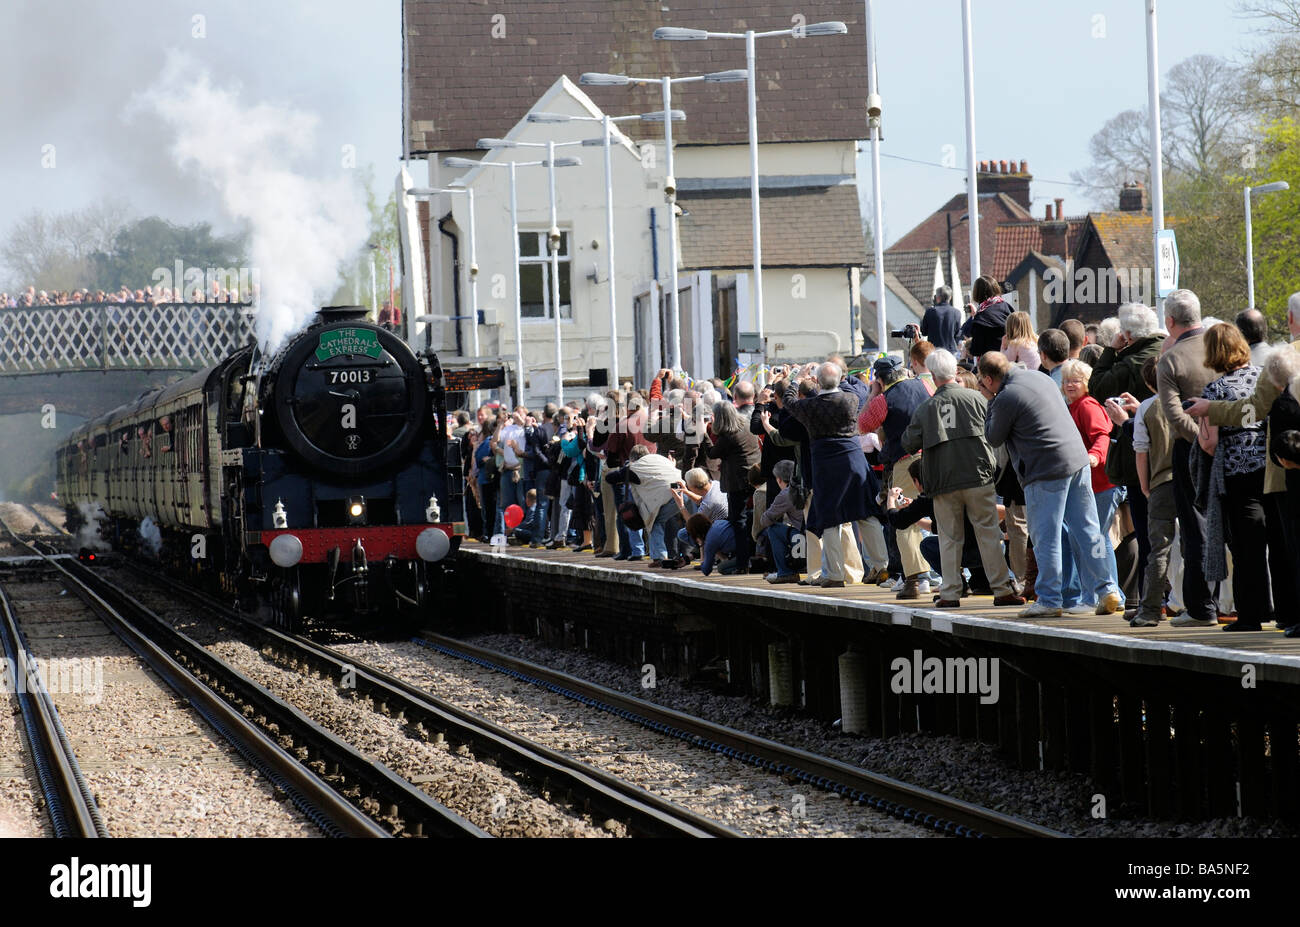 Oliver Cromwell steam engine pulling The Cathedrals Express train pulling into Petersfield railway station - Stock Image